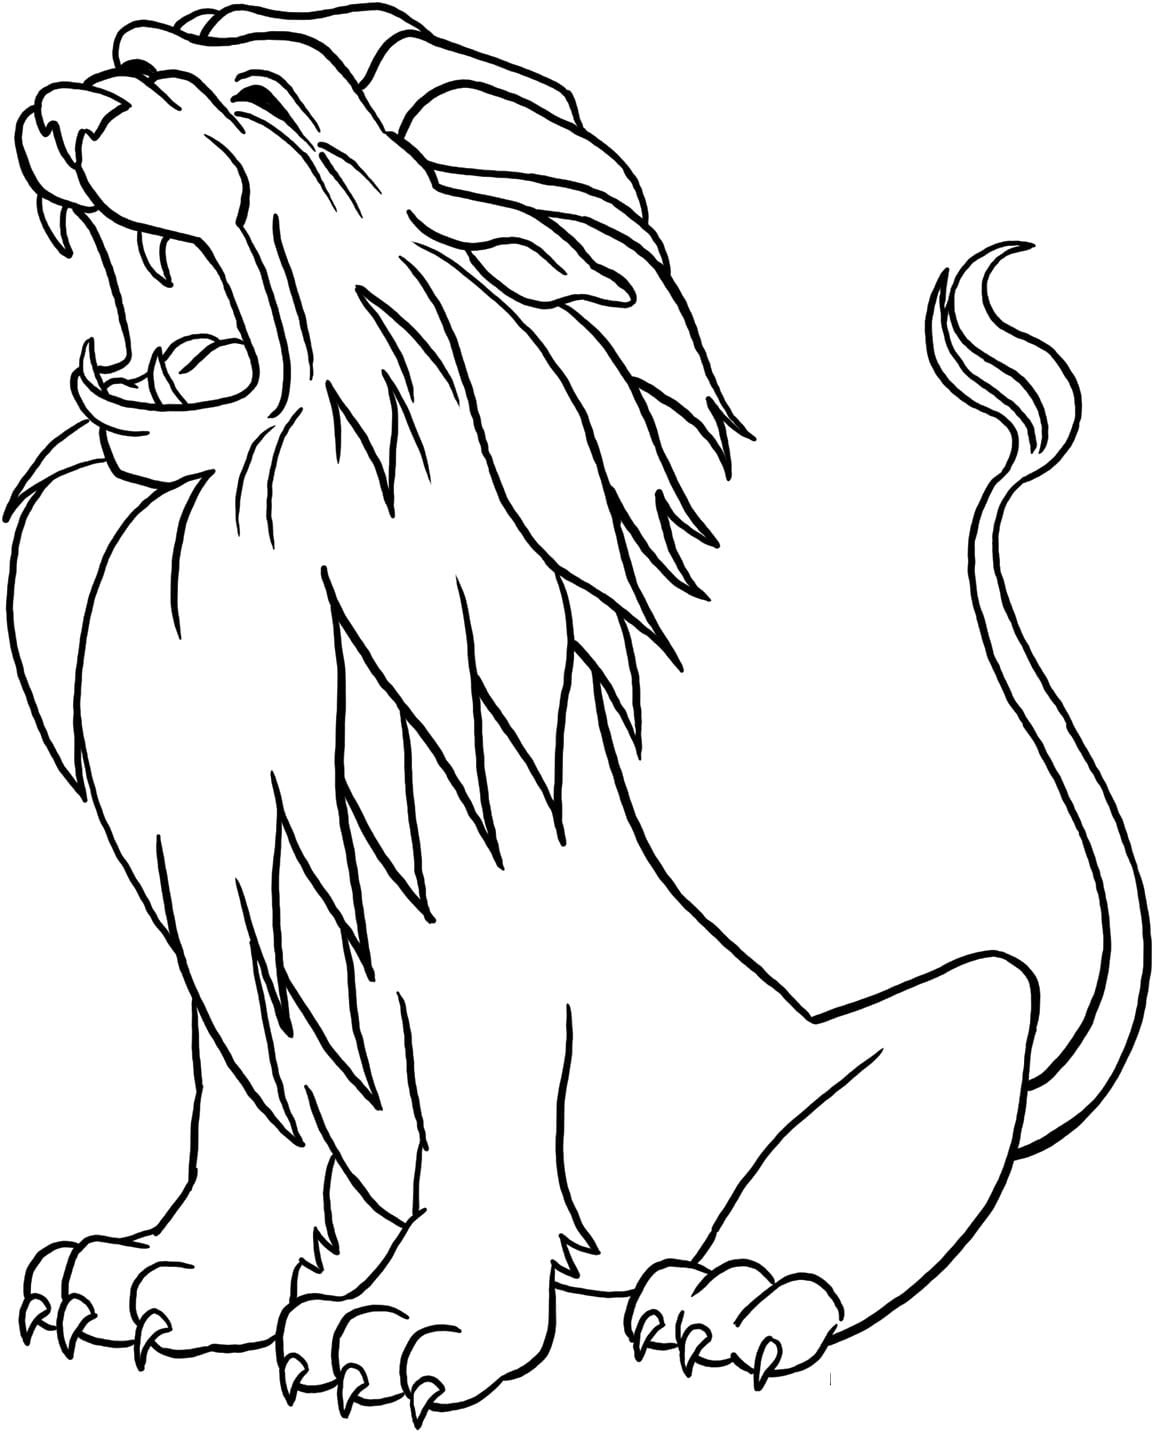 4 Coloring Page Lion, African Lion Coloring Page Free Printable